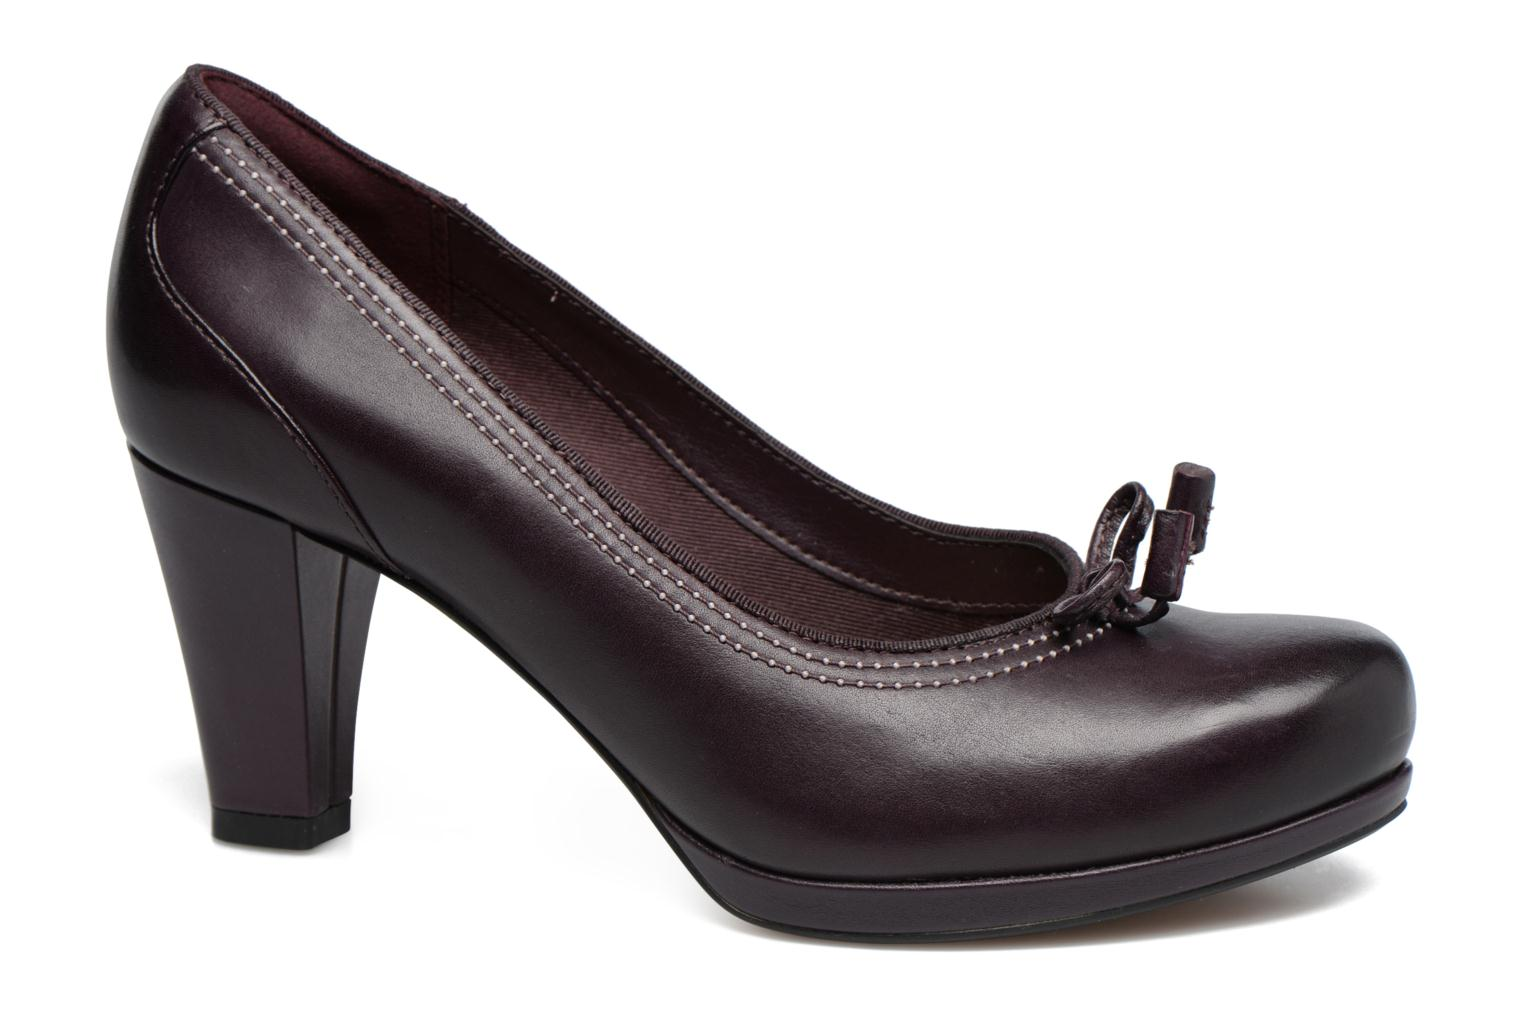 cheap sale for sale shipping discount authentic CLARKS Chorus Bombay Leather Heels very cheap online uoa8x8l